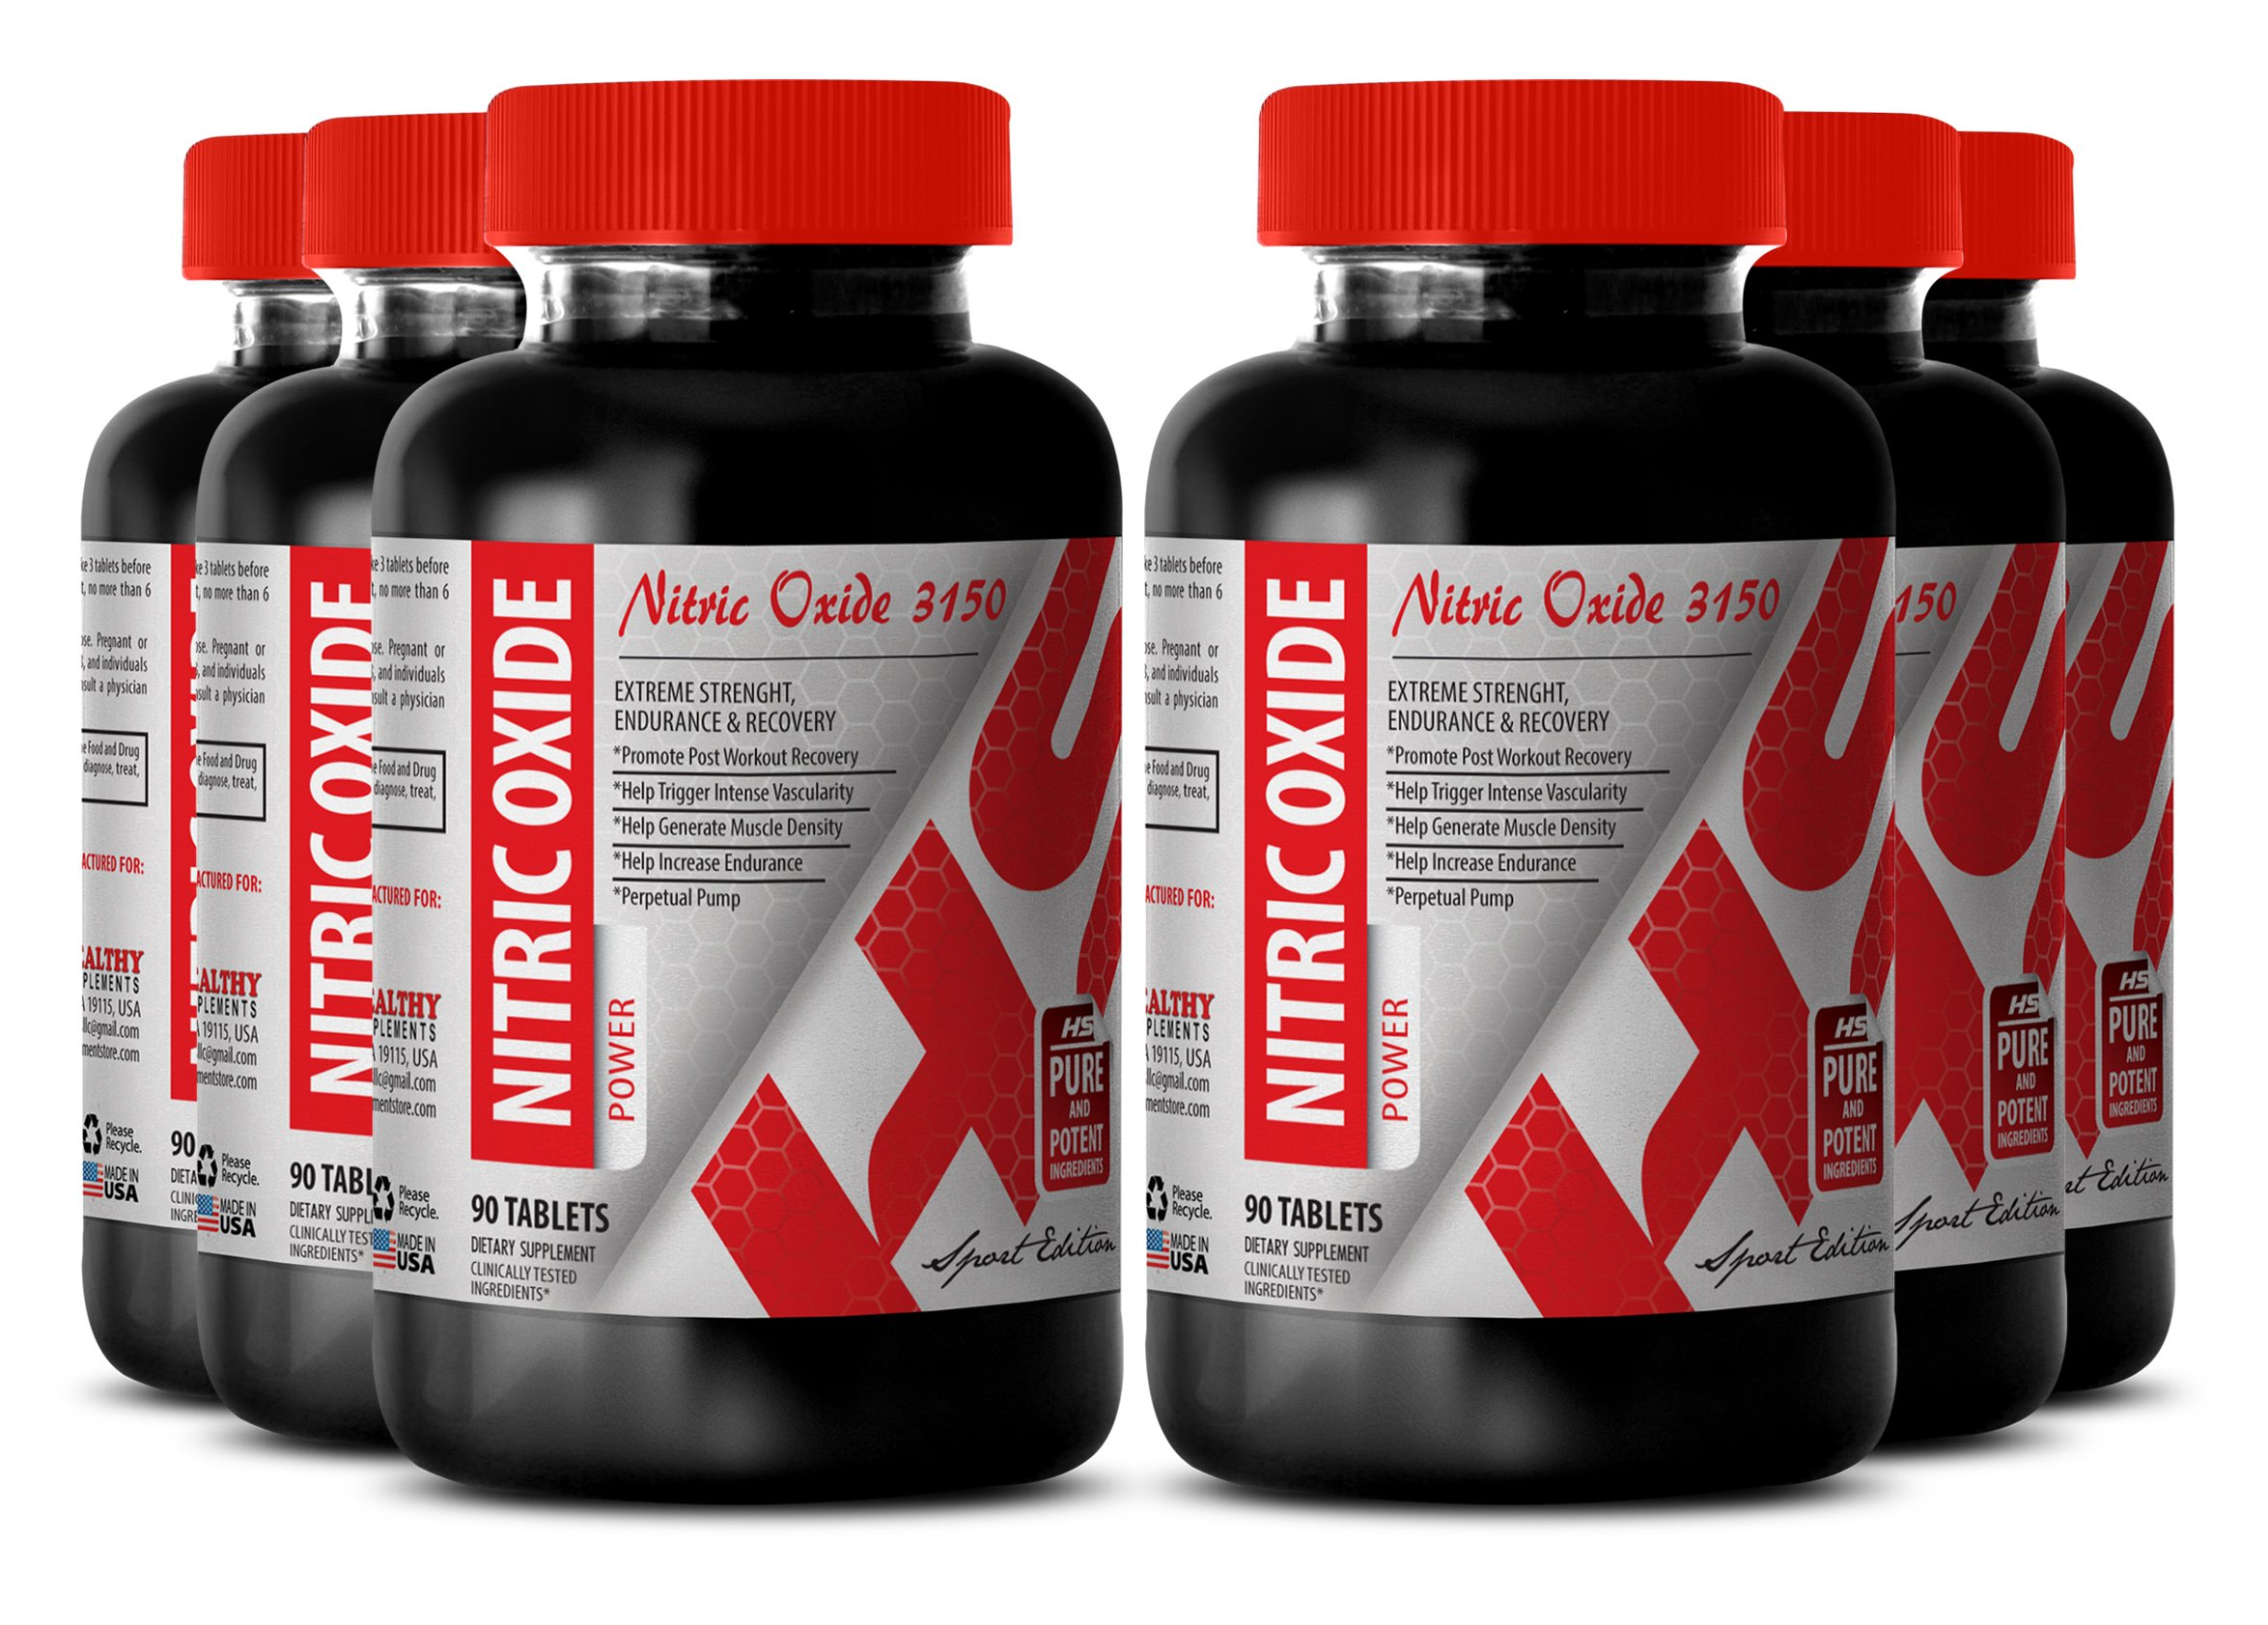 Nitric oxide formula - 3150 MG PREMIUM NITRIC OXIDE POWER - increase focus (6 Bottles)